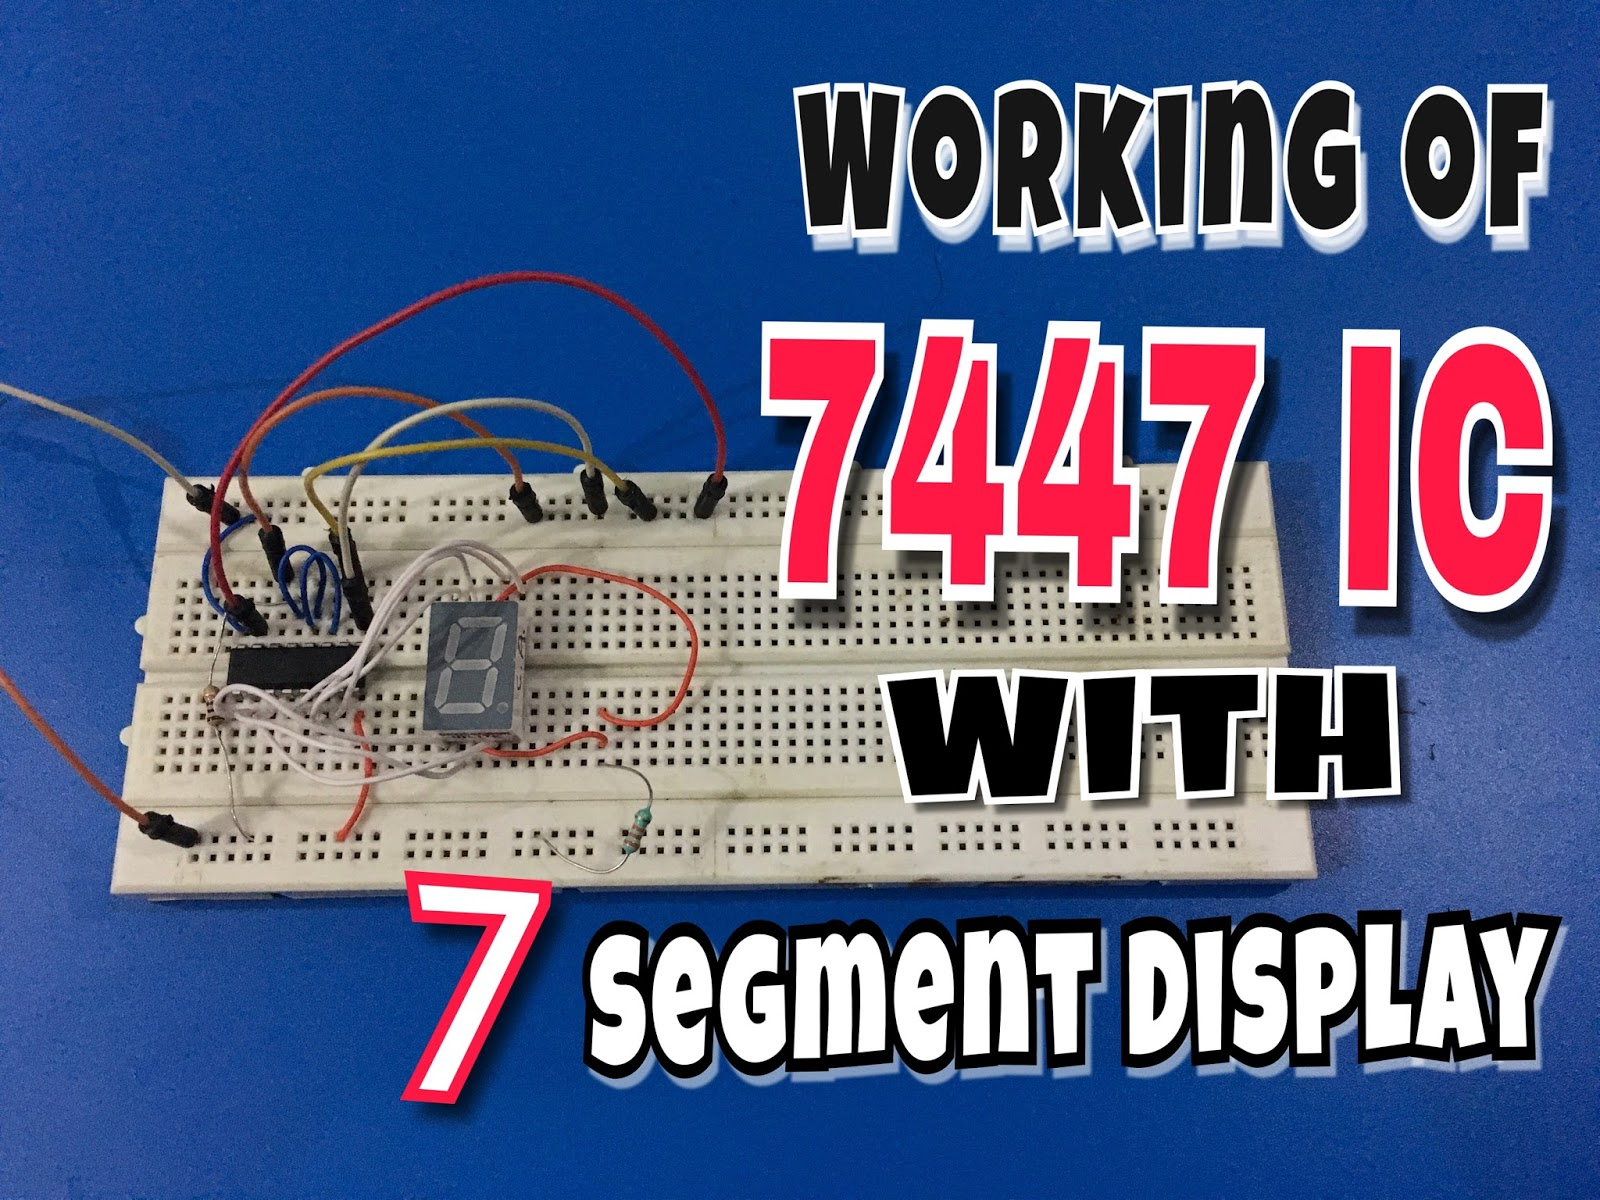 7447 Seven Segment Display Working David Show 7 Circuit Diagram The Chip Is Used To Drive